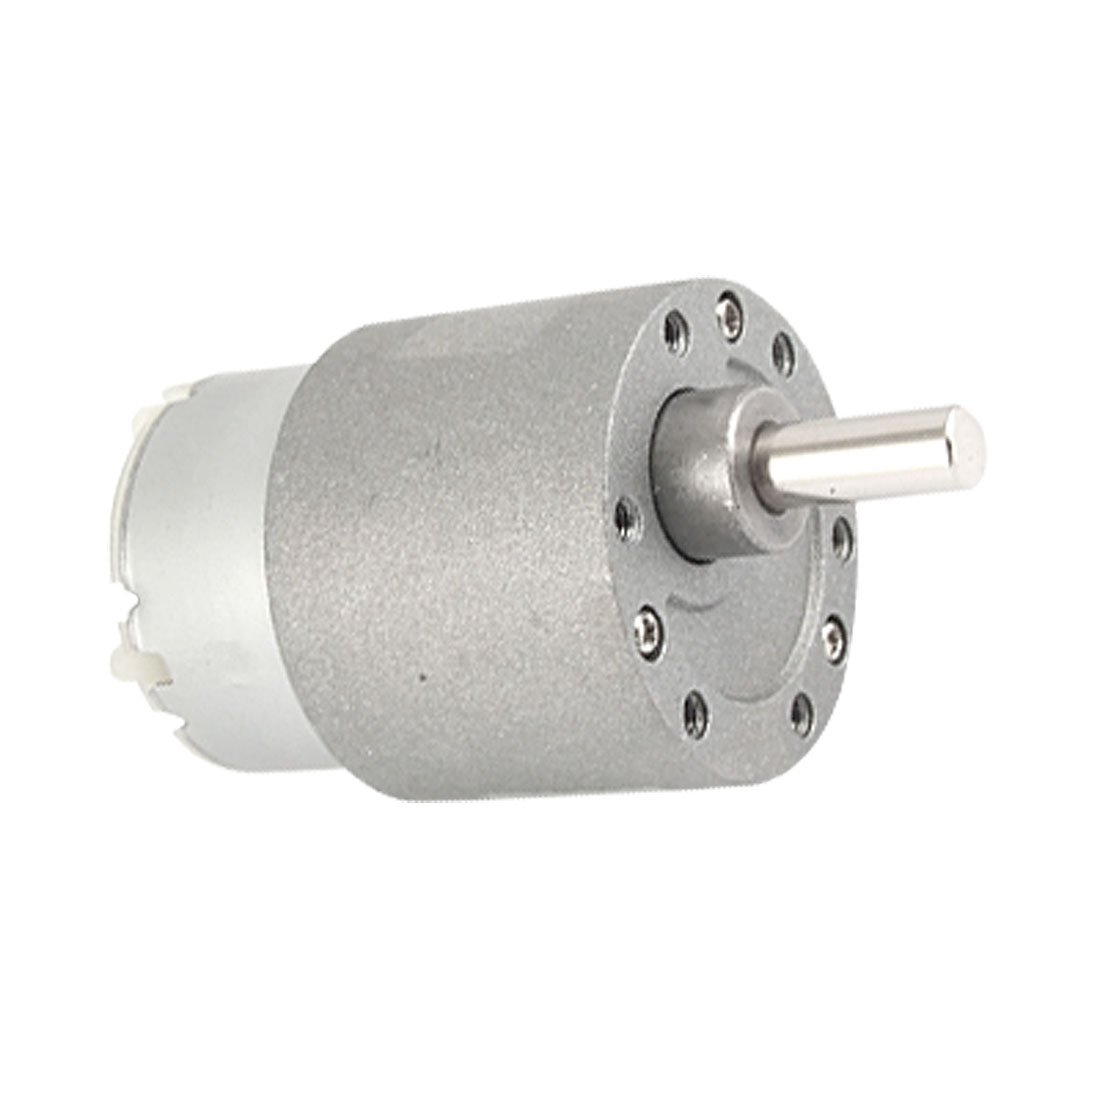 12V DC 0.5A 150RPM Electric Speed Reduce Gear Box Motor 37mm